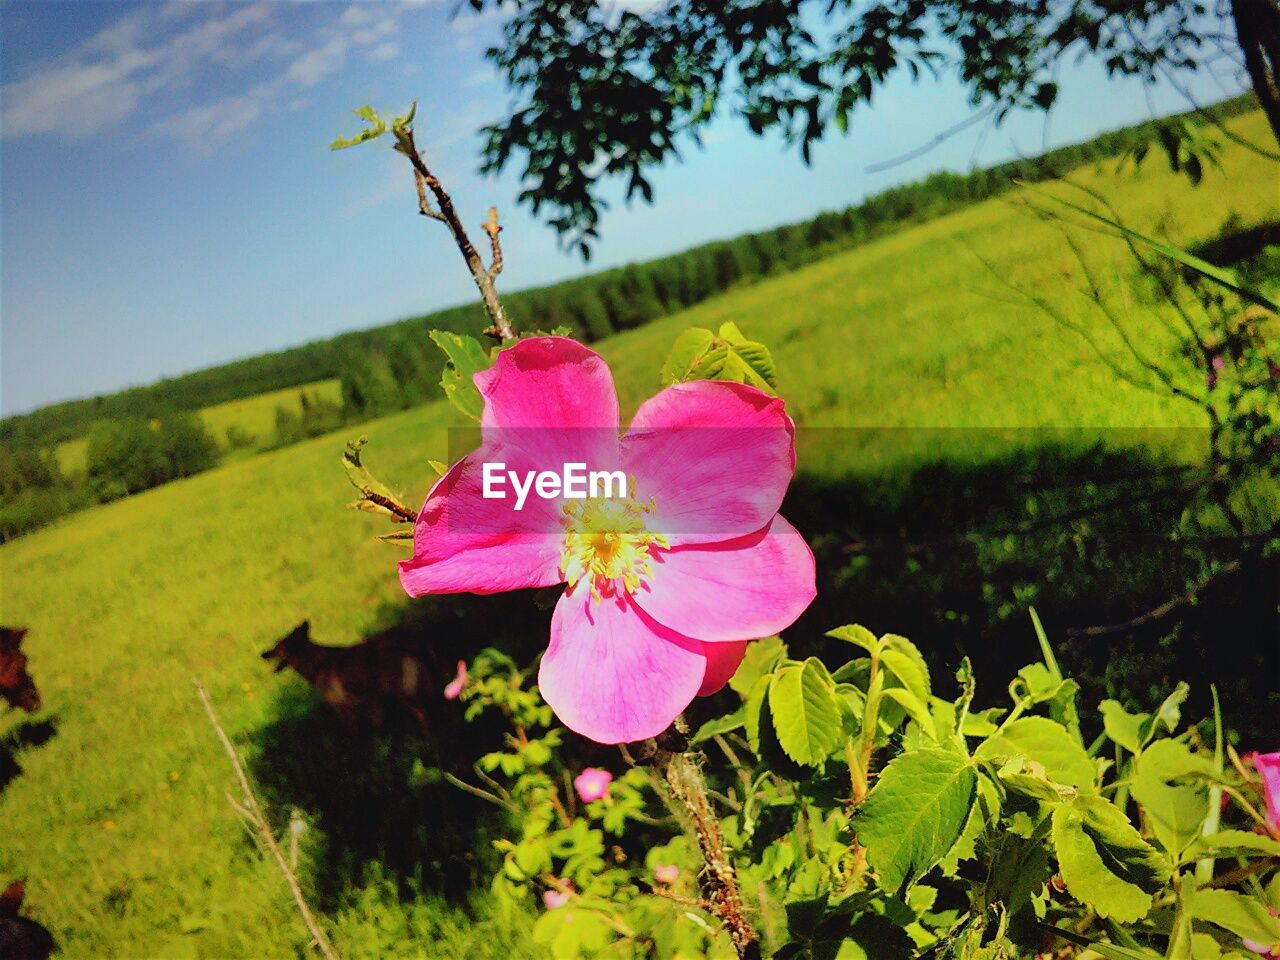 flower, fragility, pink color, growth, nature, beauty in nature, petal, plant, flower head, no people, focus on foreground, day, green color, leaf, outdoors, freshness, close-up, blooming, tree, hibiscus, sky